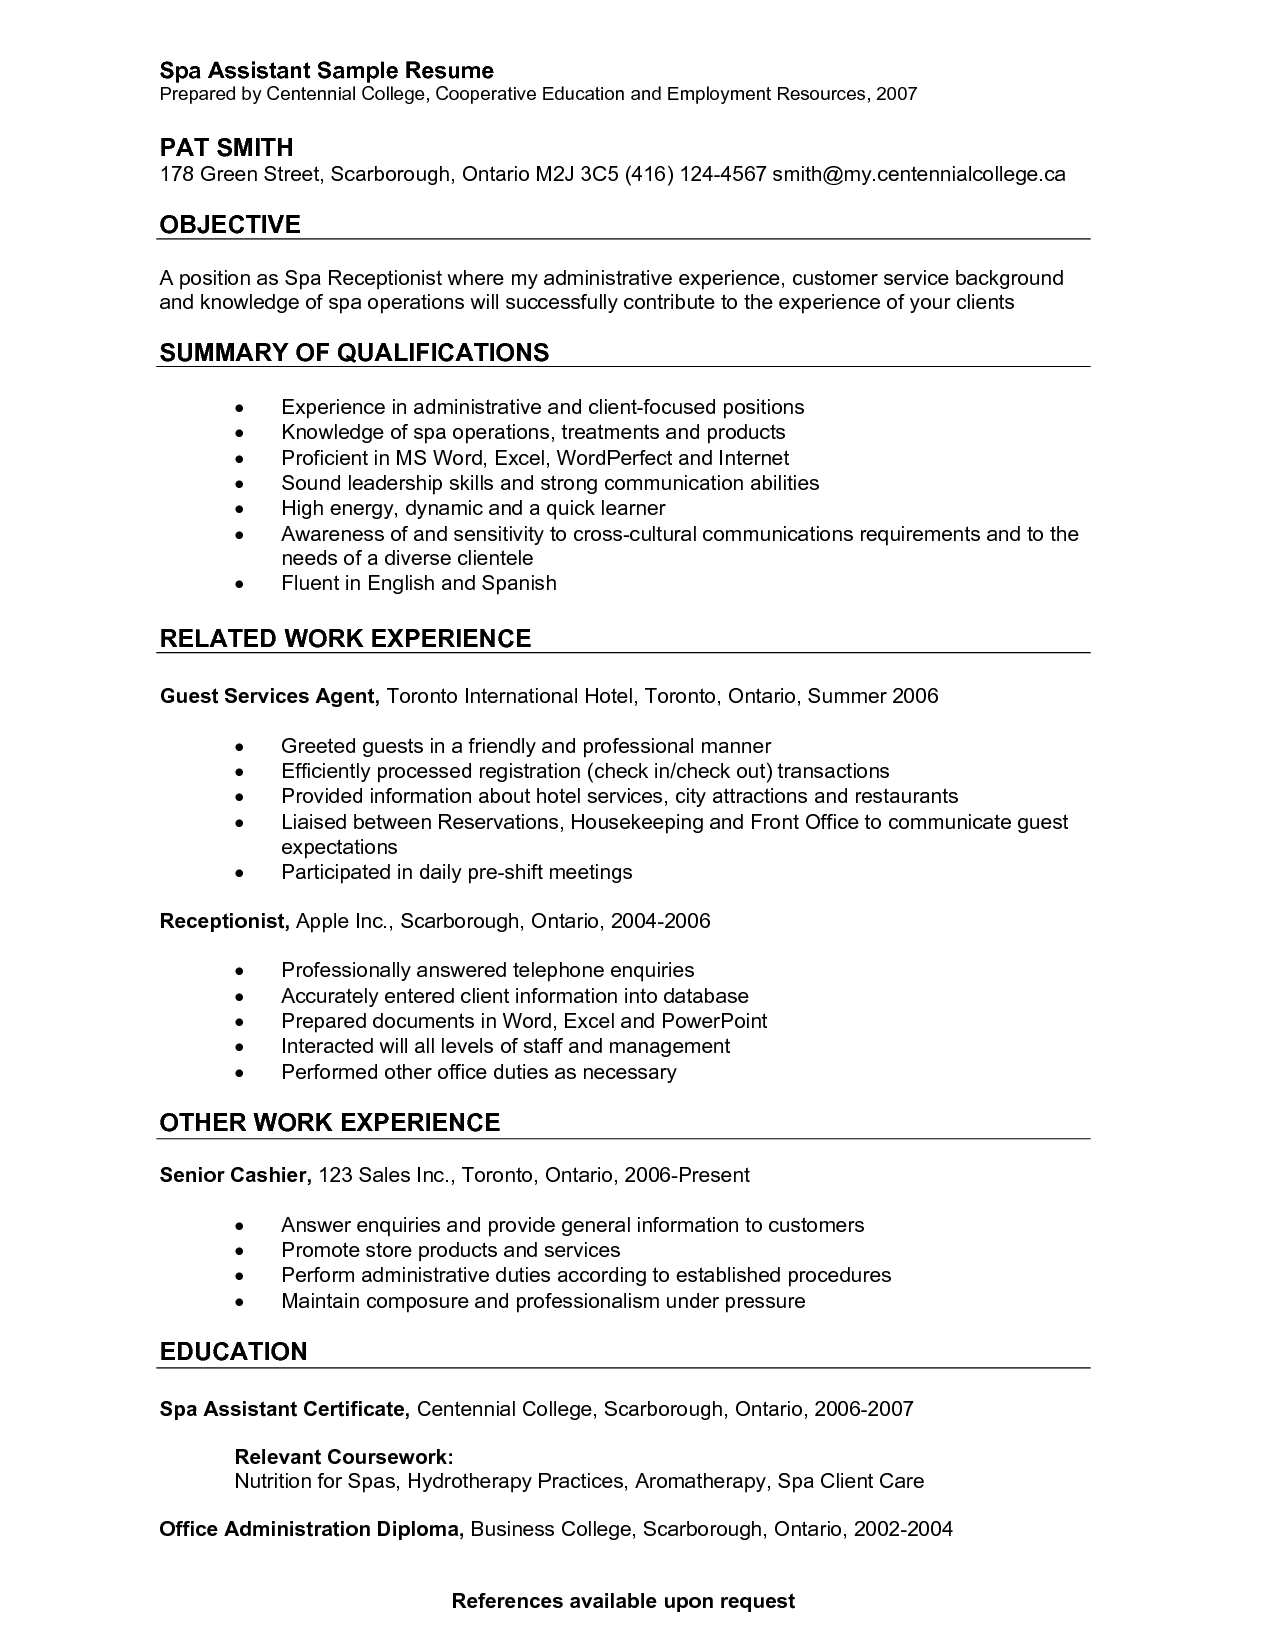 Resume For Concierge Personal Assistant Sample Best Spa Job Description  Cover Letter  Administrative Assistant Objective Samples